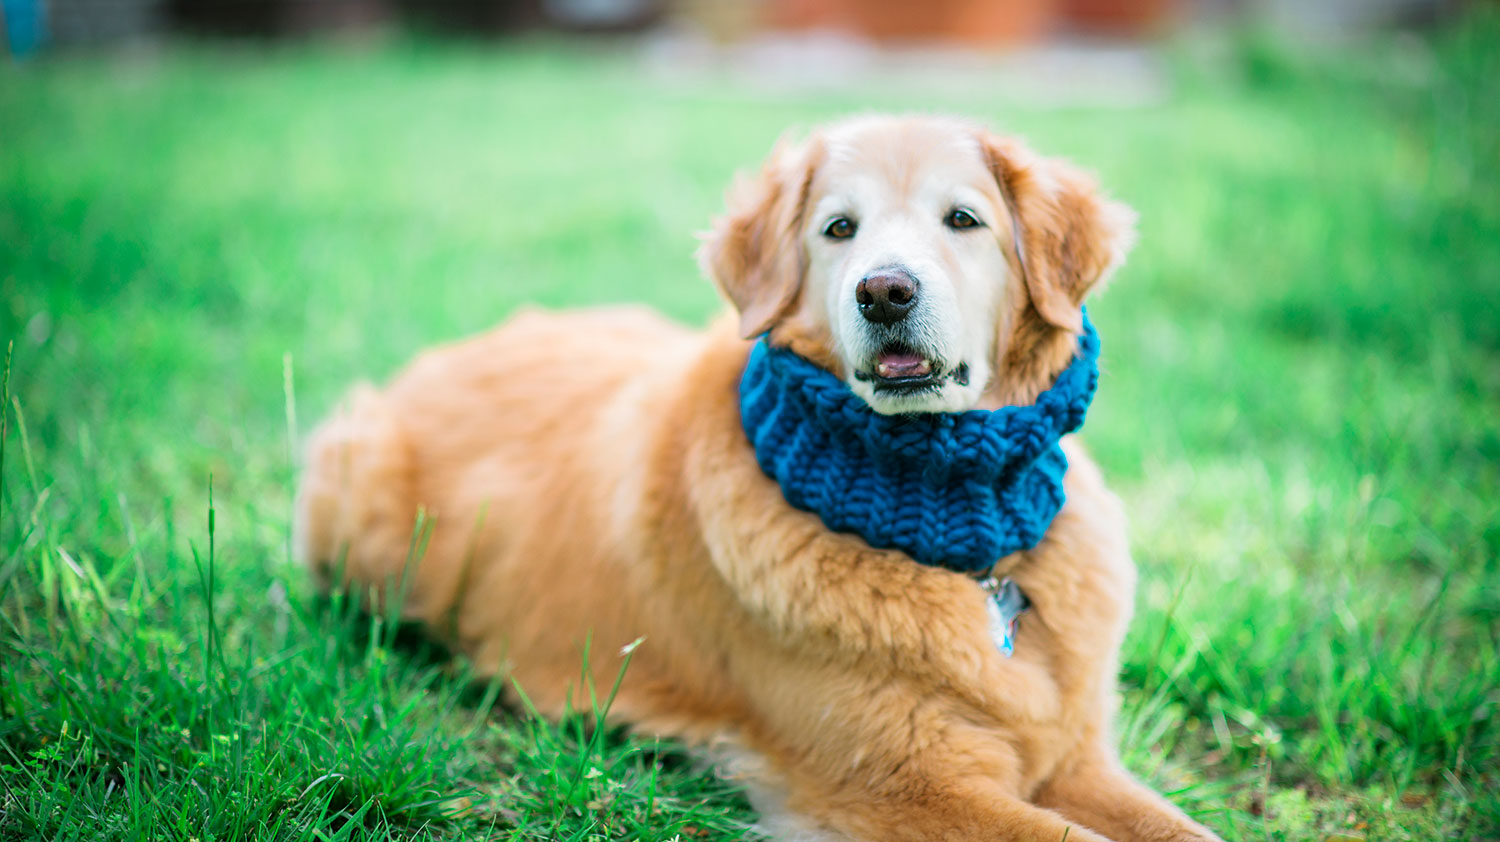 smiling golden retriever in a bright blue knitted dog cowl